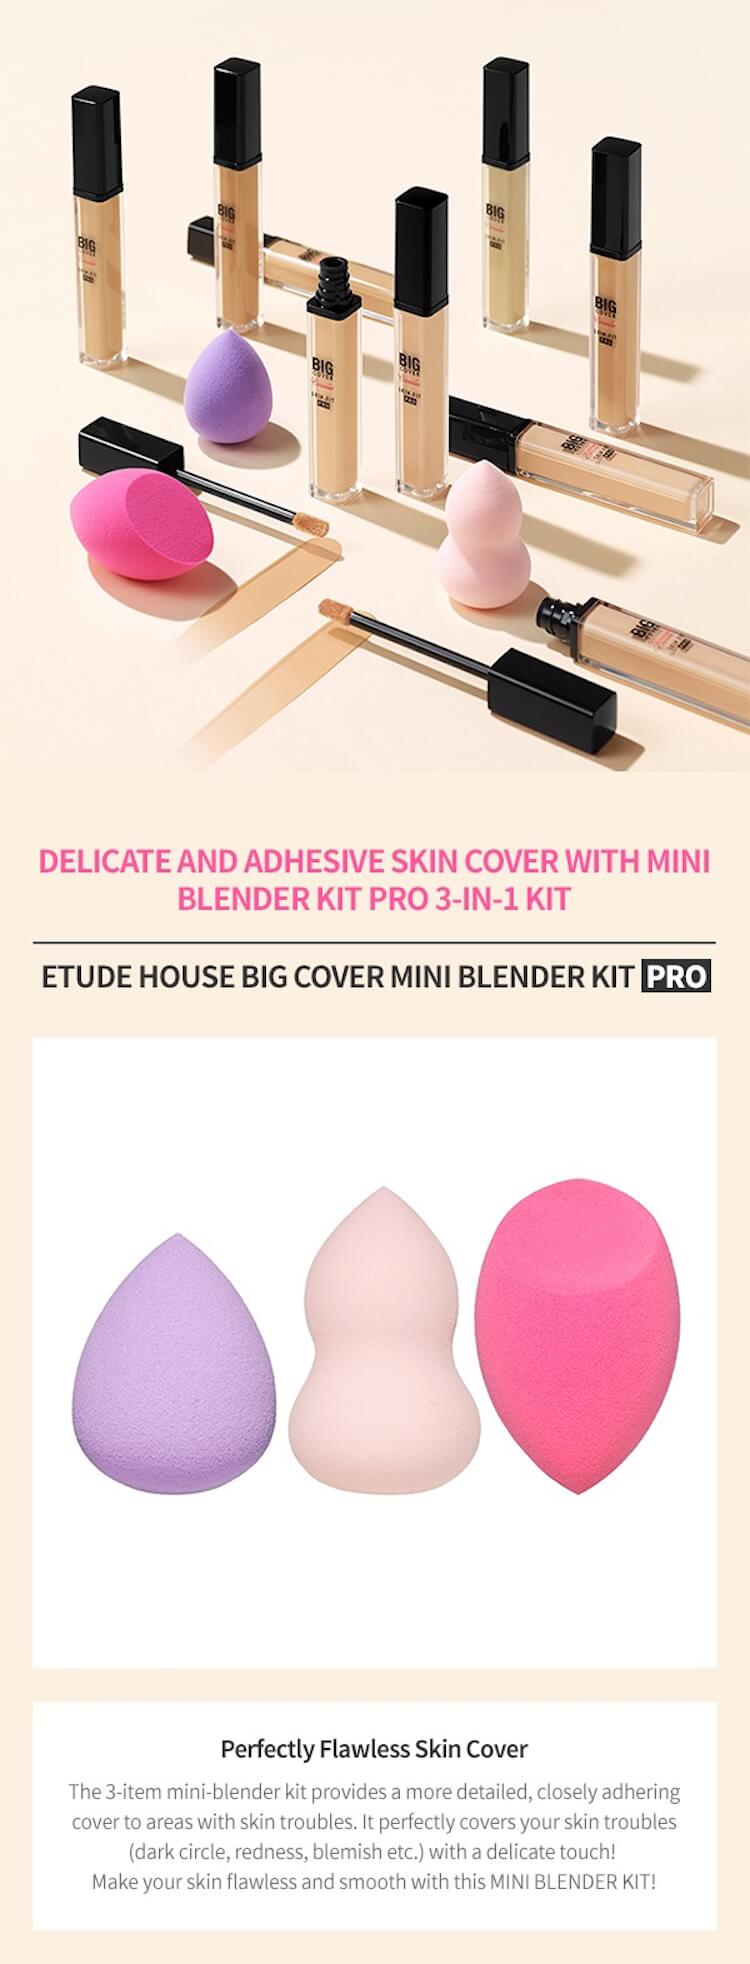 Etude House Big Cover Mini Blender Kit Pro